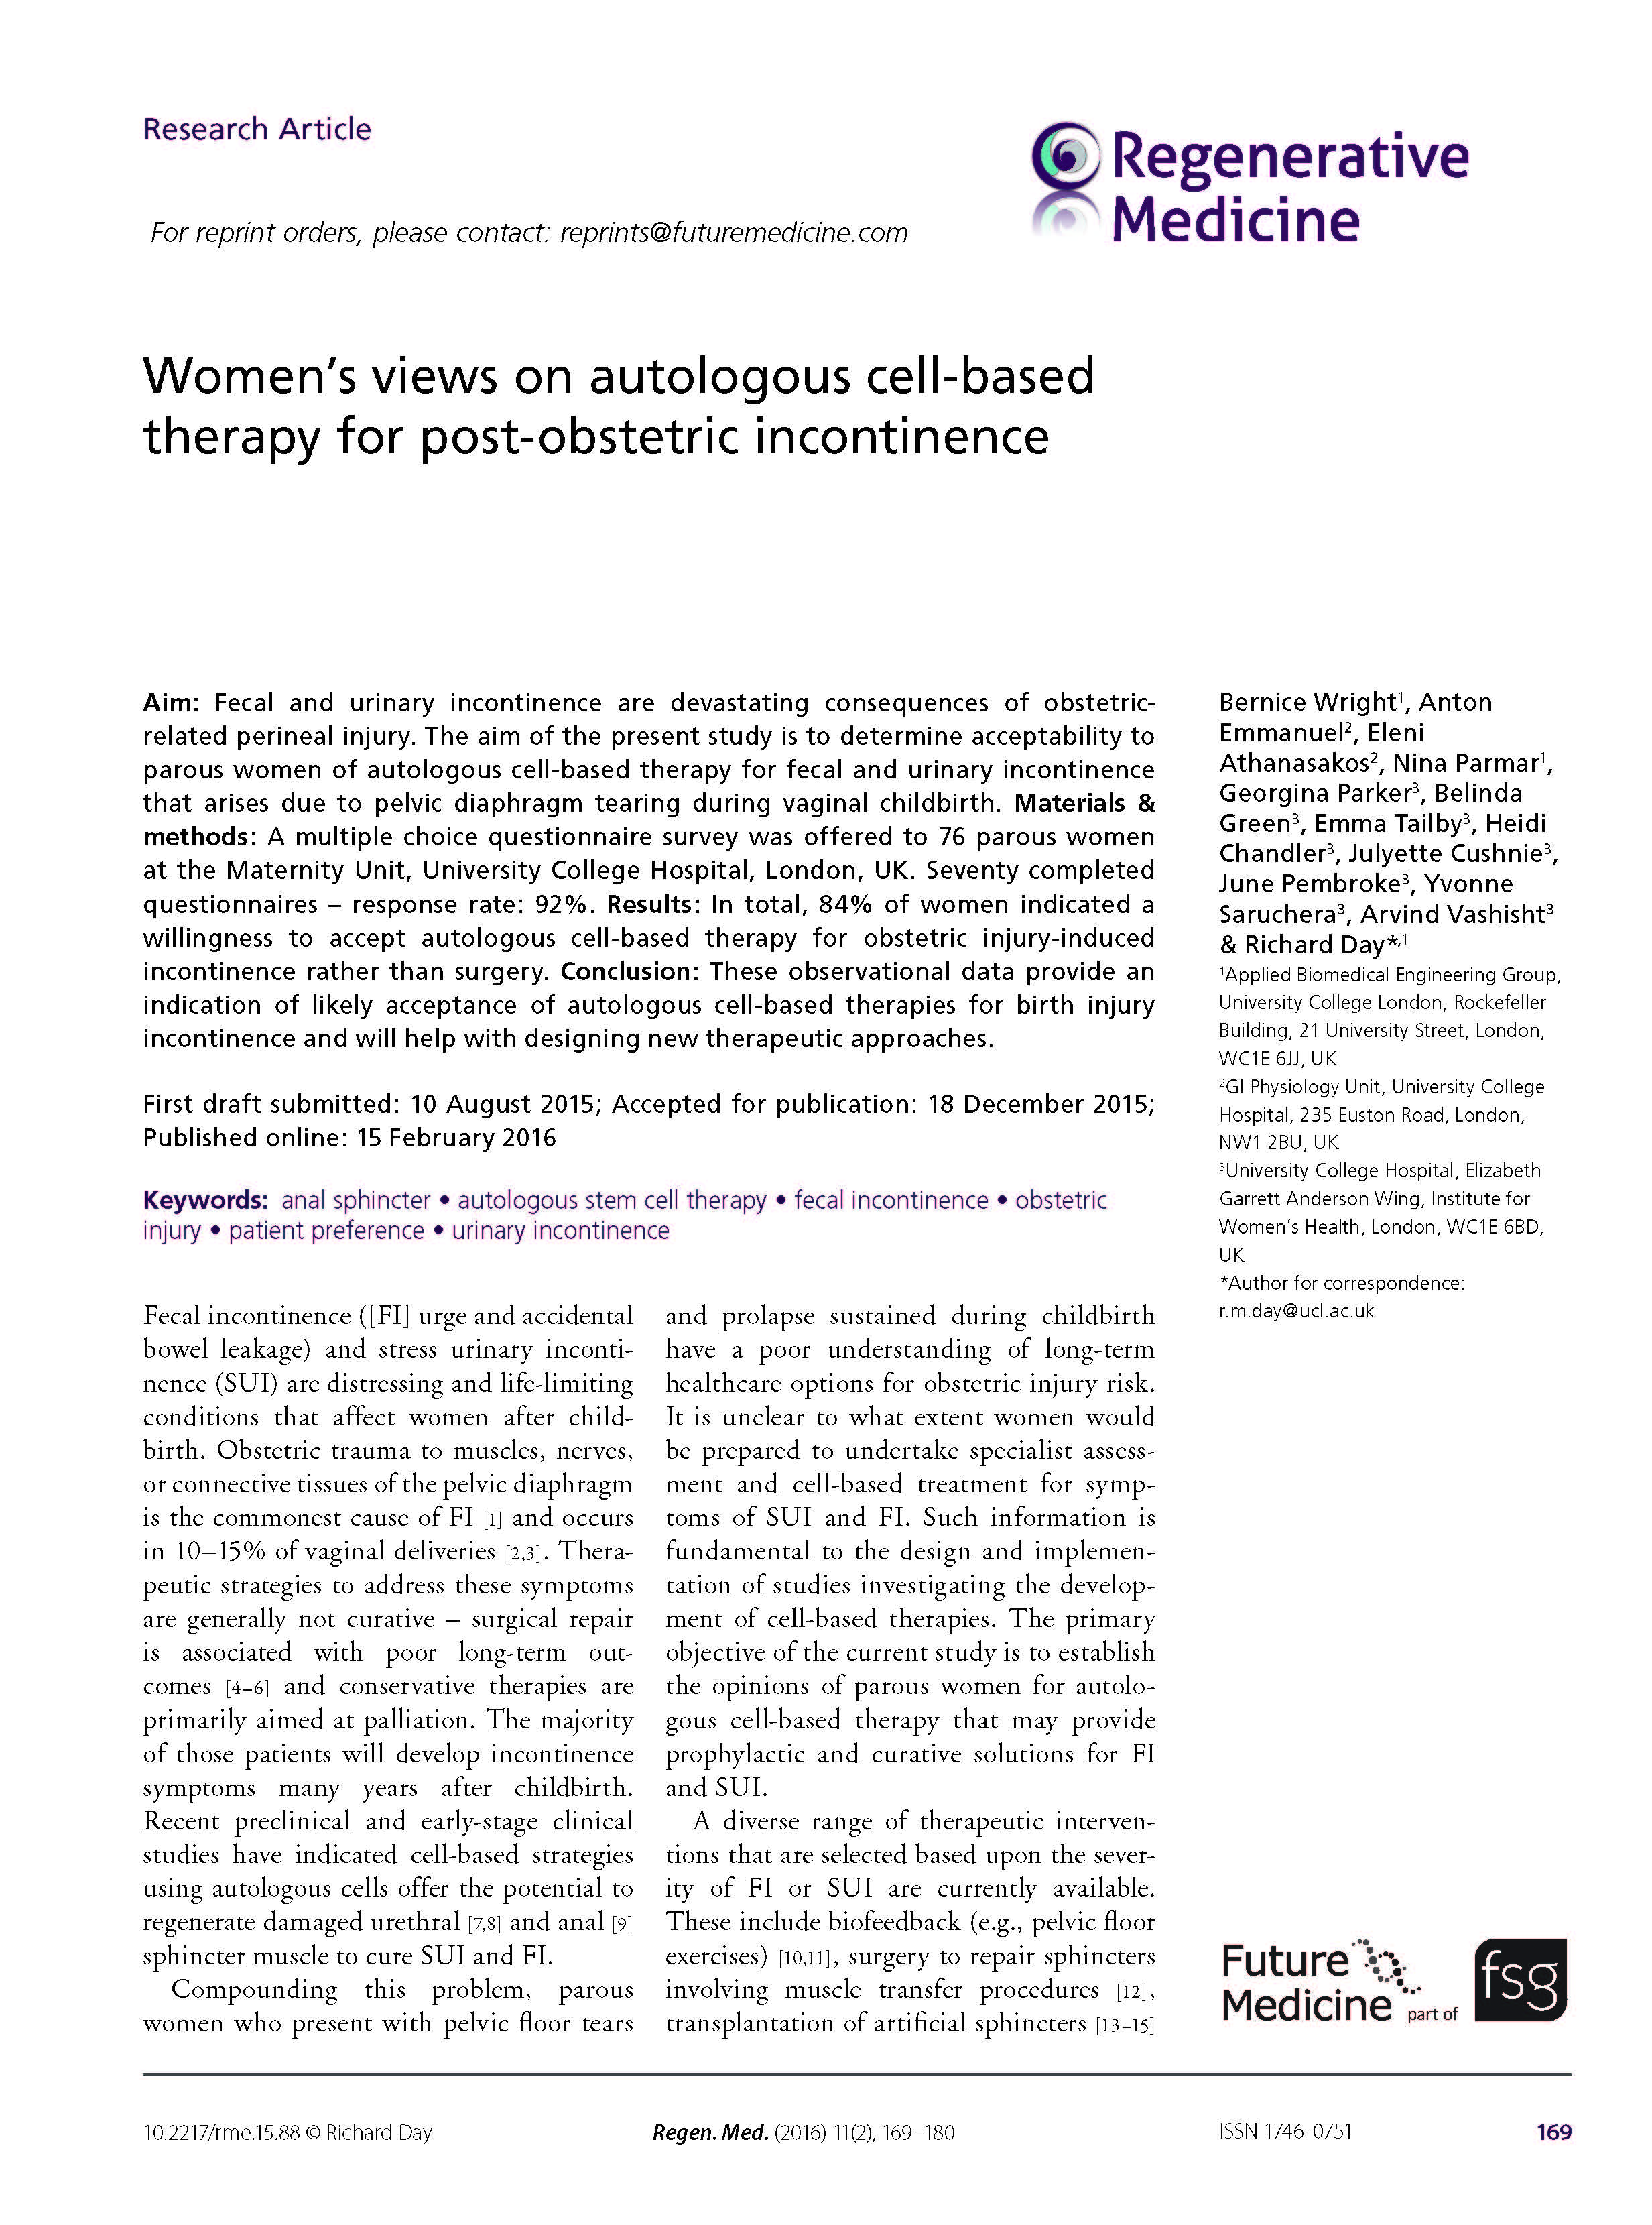 Women's views on autologous cell-based therapy for post-obstetric incontinence